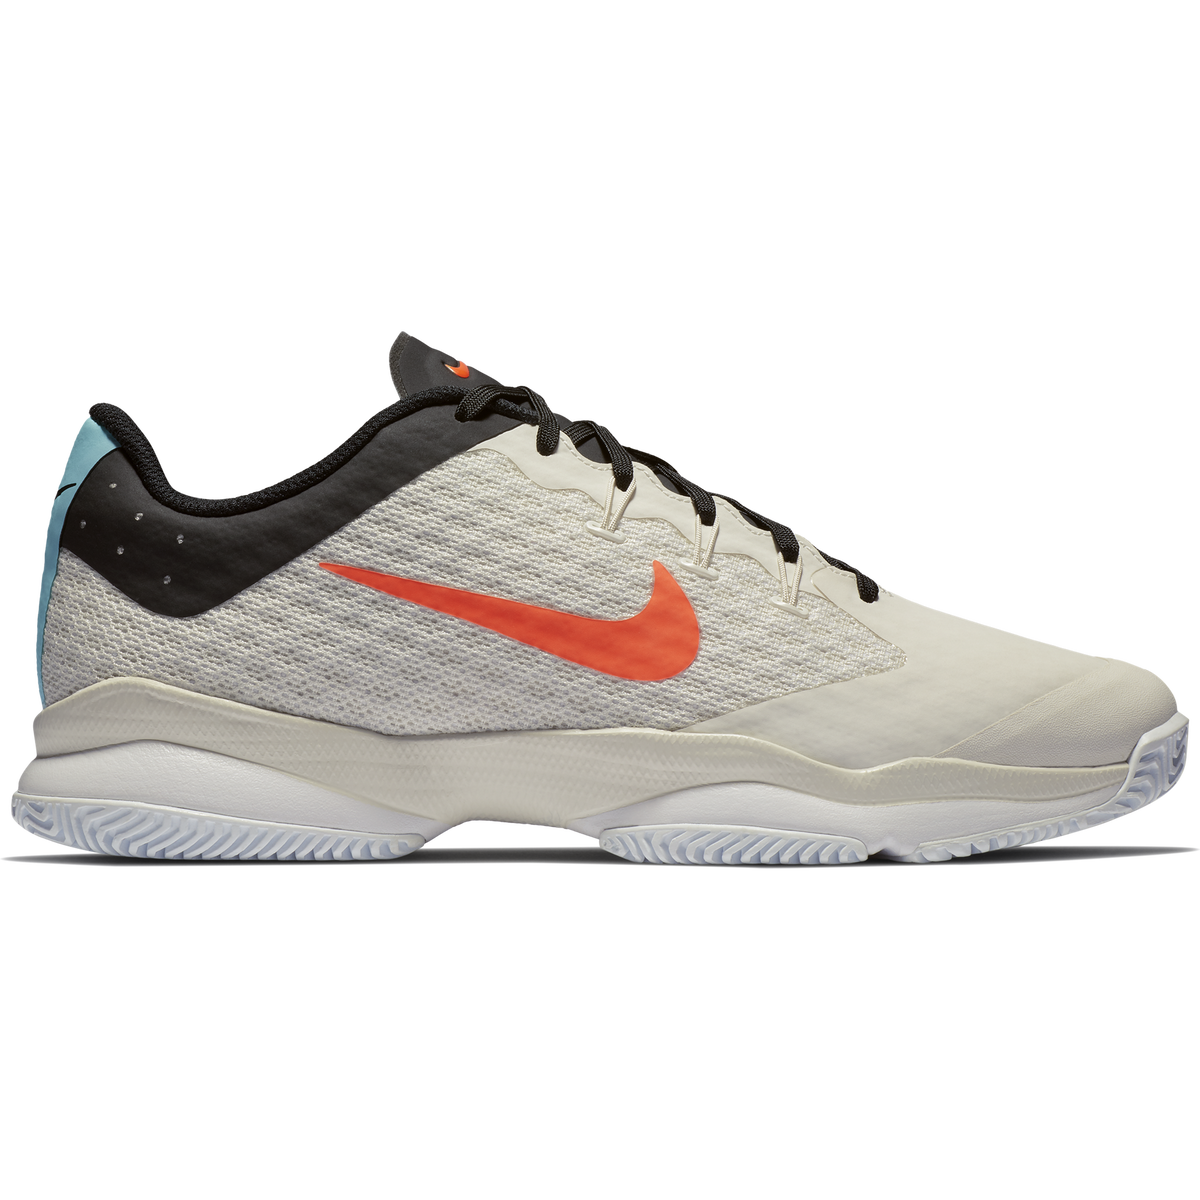 508746e2ac1b Images. Nike Air Zoom Ultra Men  39 s Tennis Shoe ...